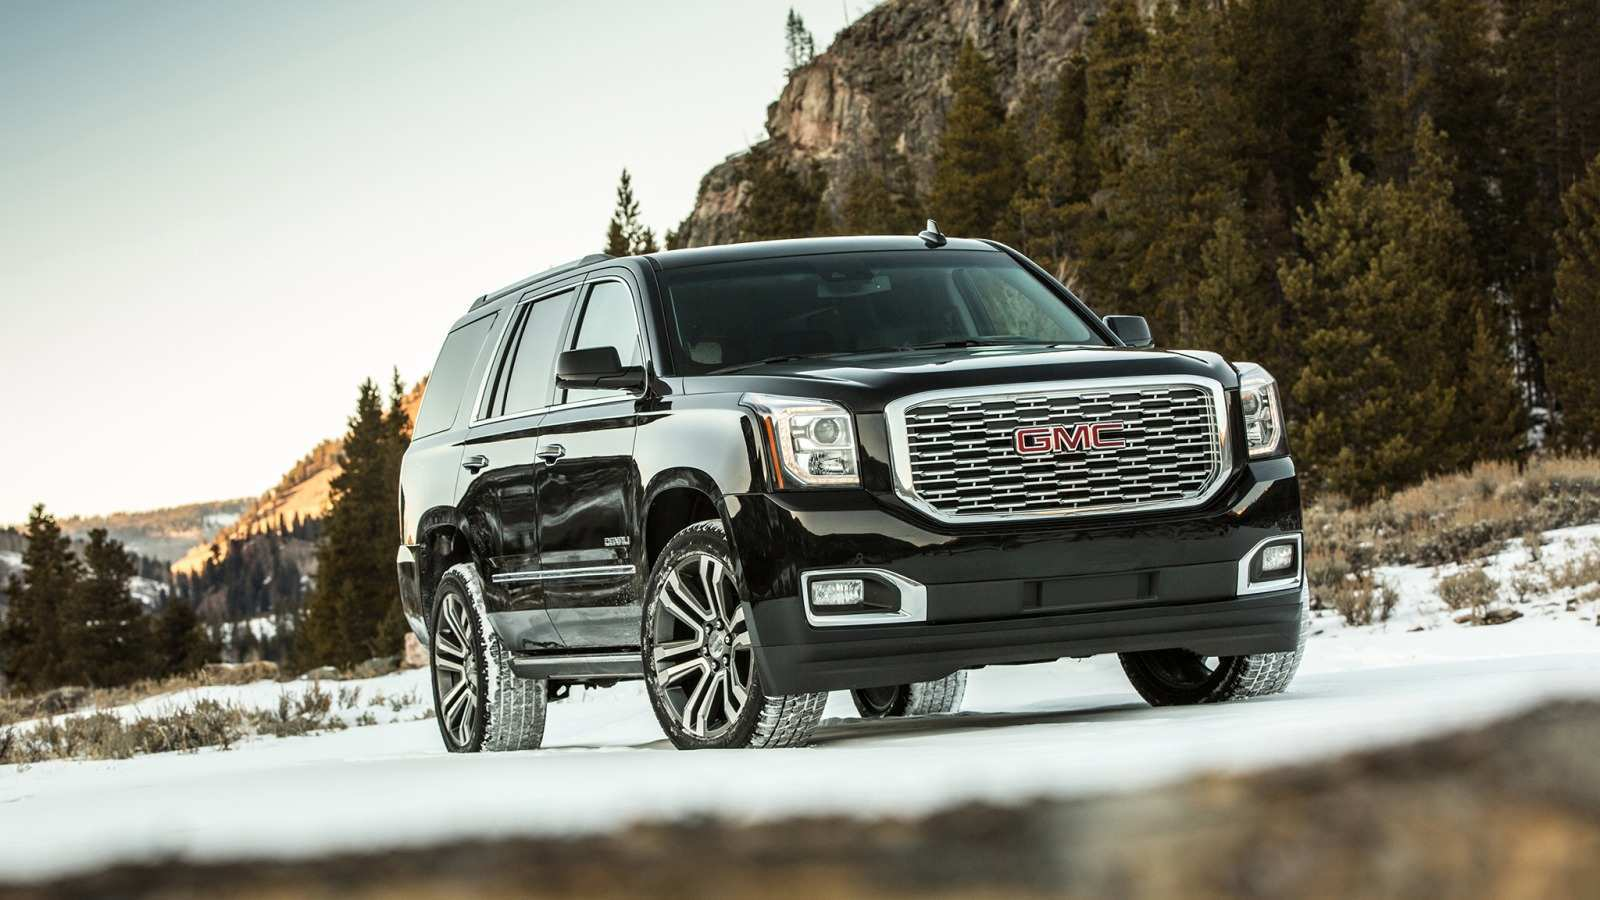 97 Concept of The Gmc 2019 Video Review And Price Performance with The Gmc 2019 Video Review And Price